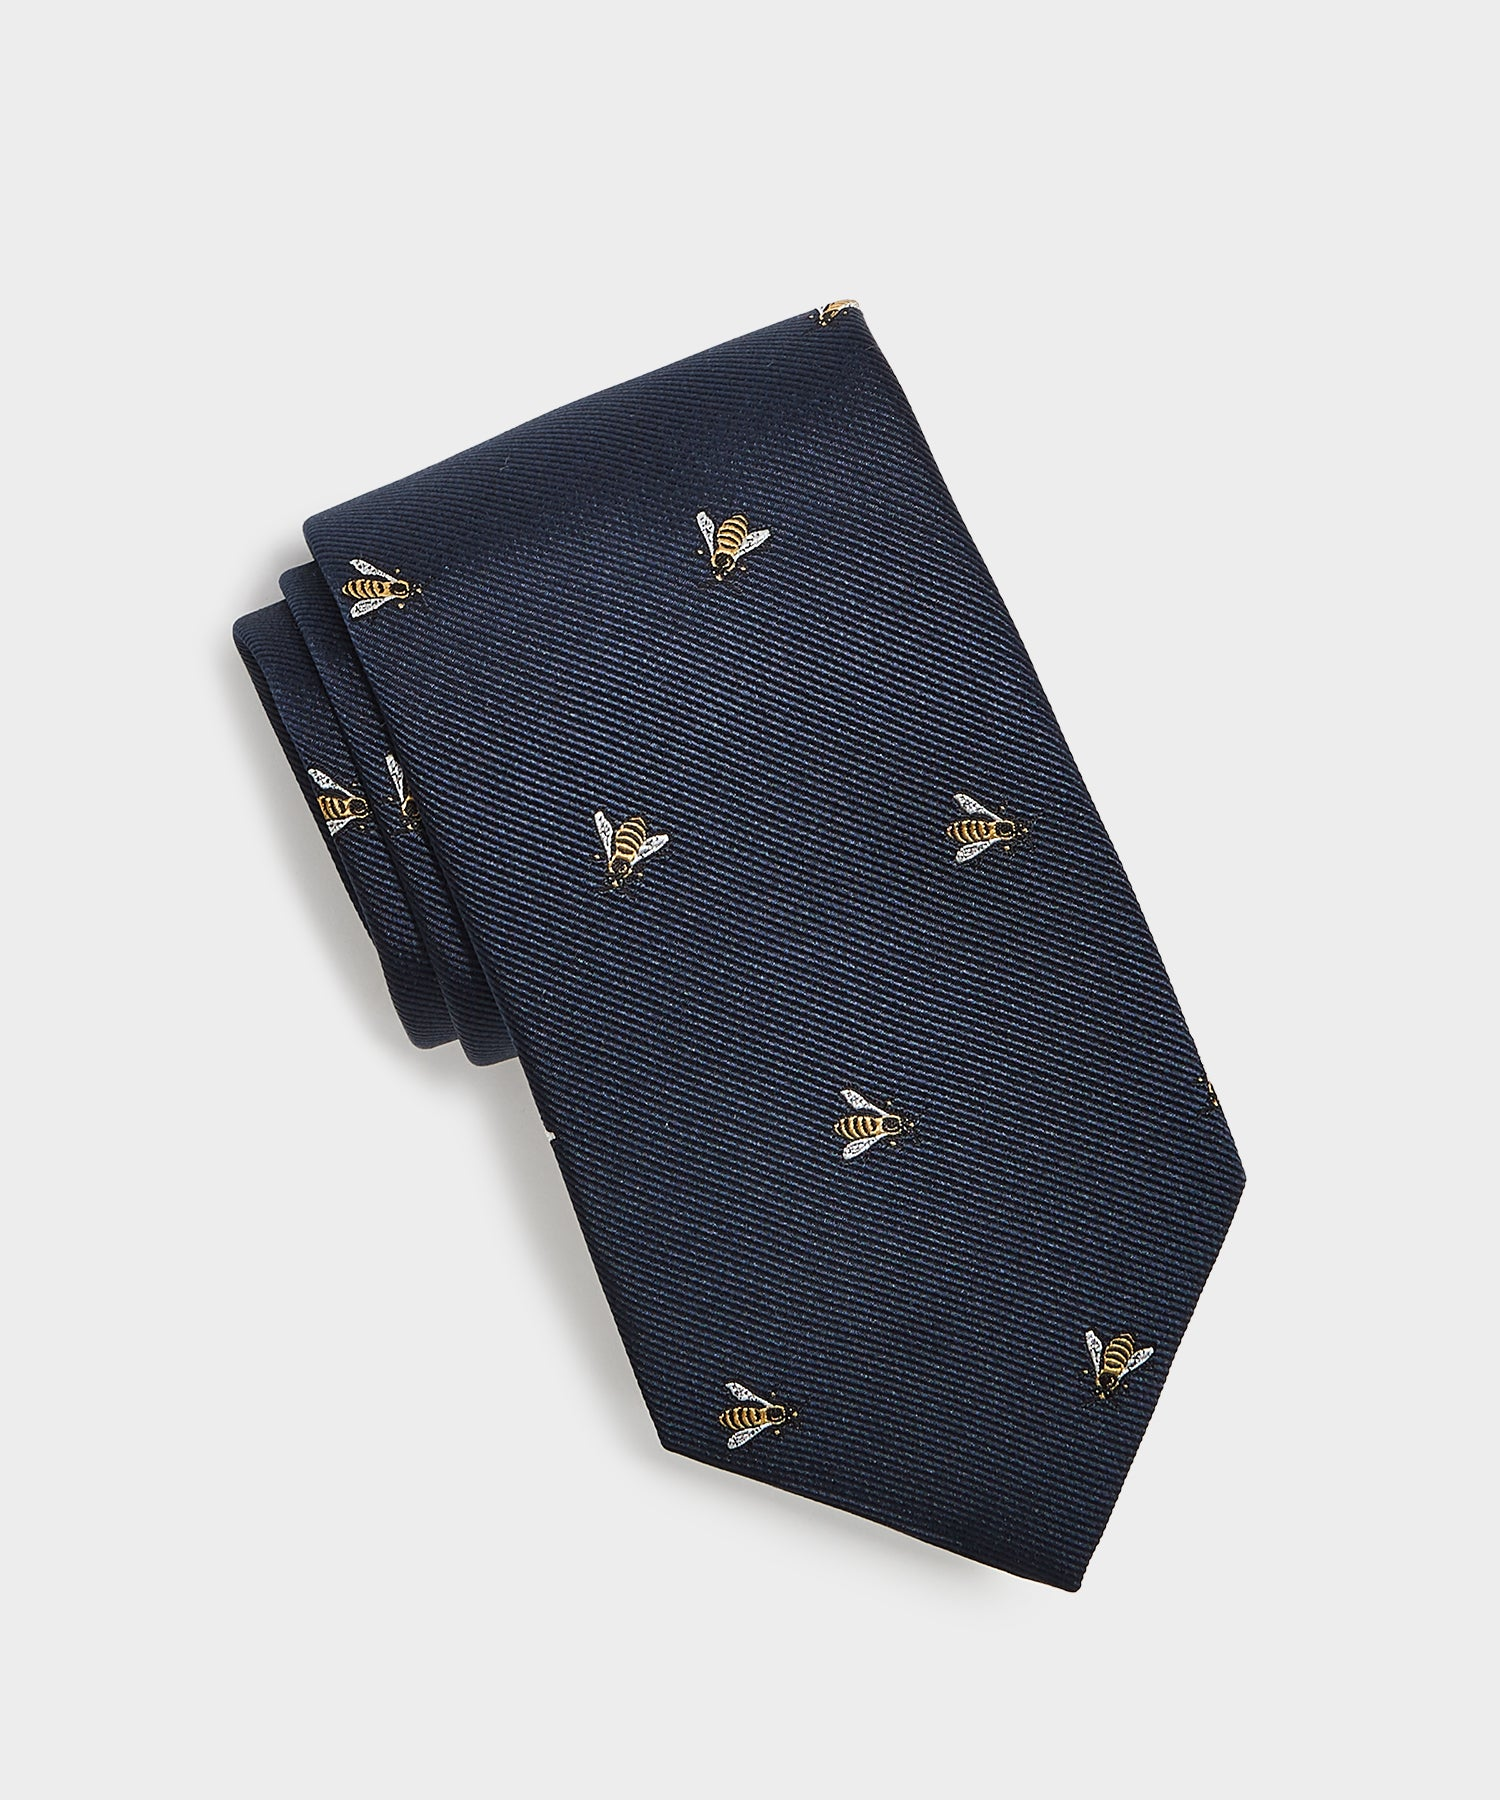 Drake's Embroidered Bee Tie in Navy